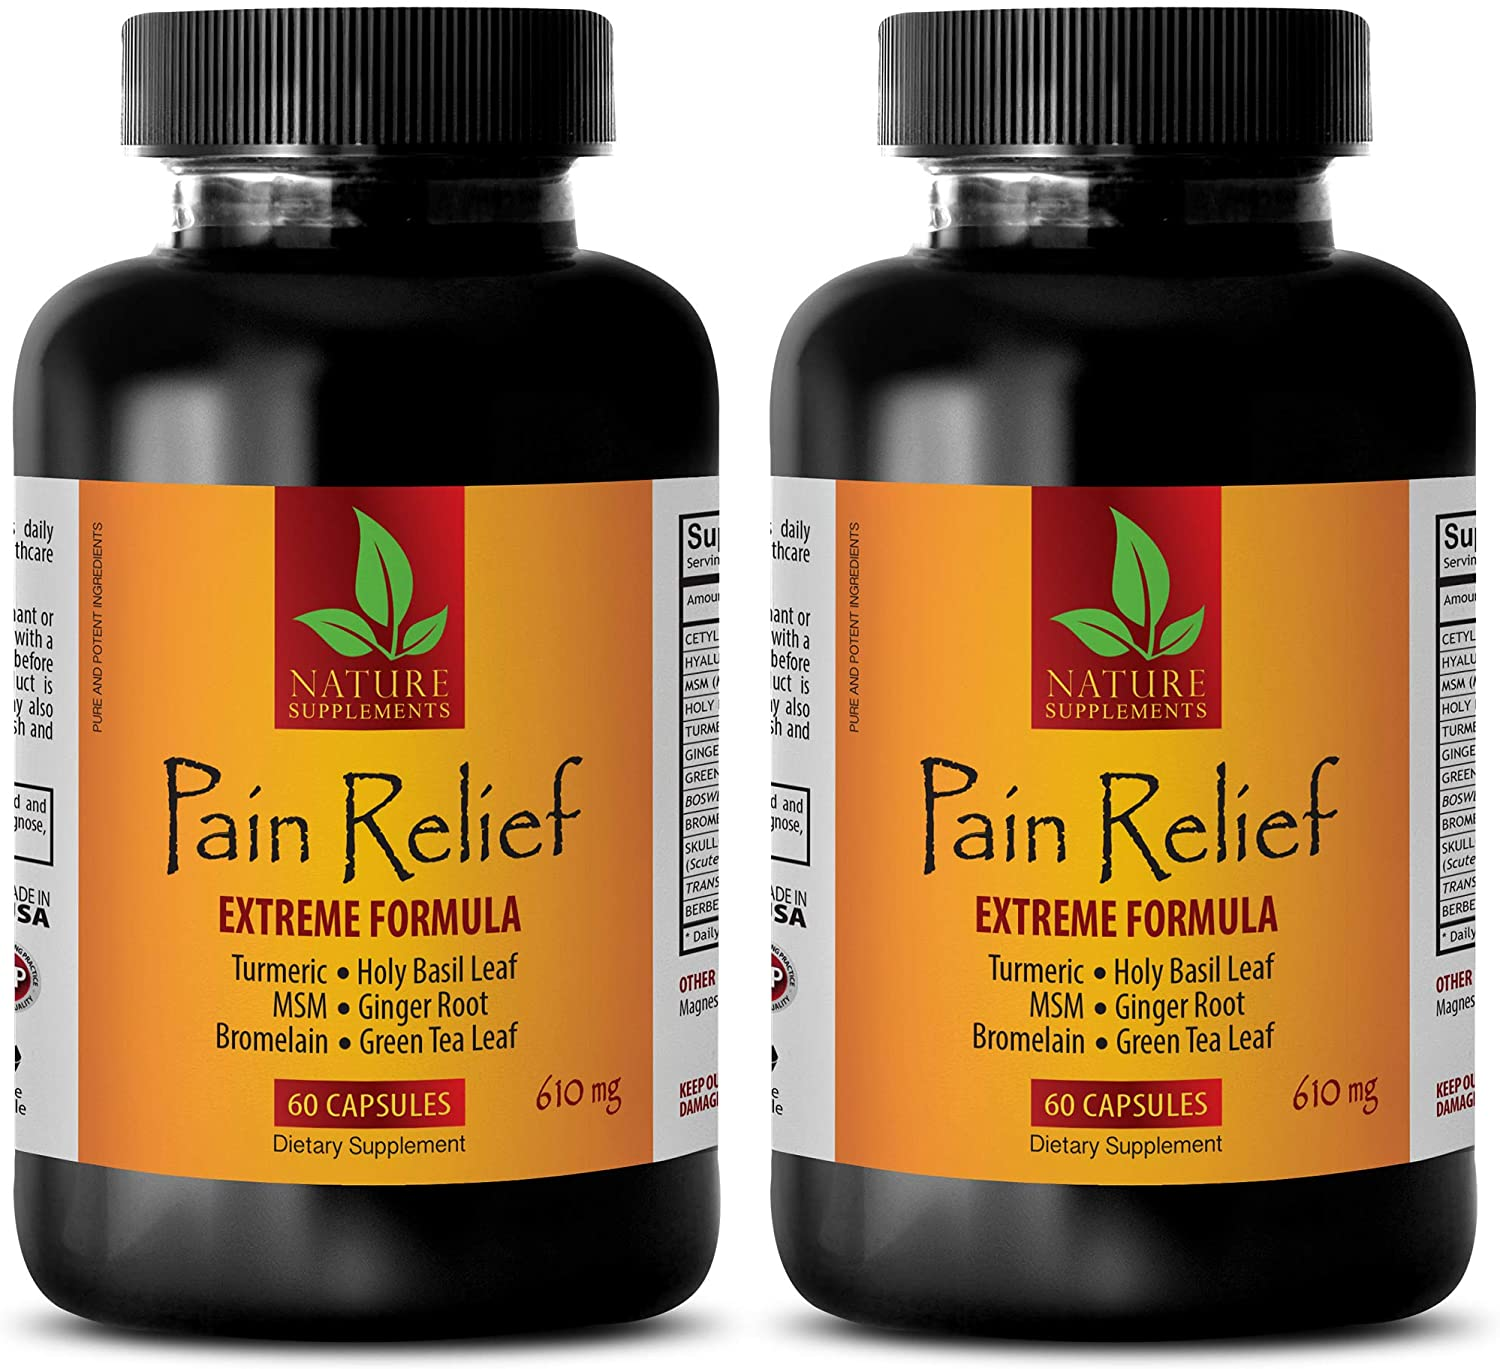 Pain Stop - Pain Relief 610MG - Extreme Formula - Green Tea Capsules - 2 Bottles (120 Capsules)